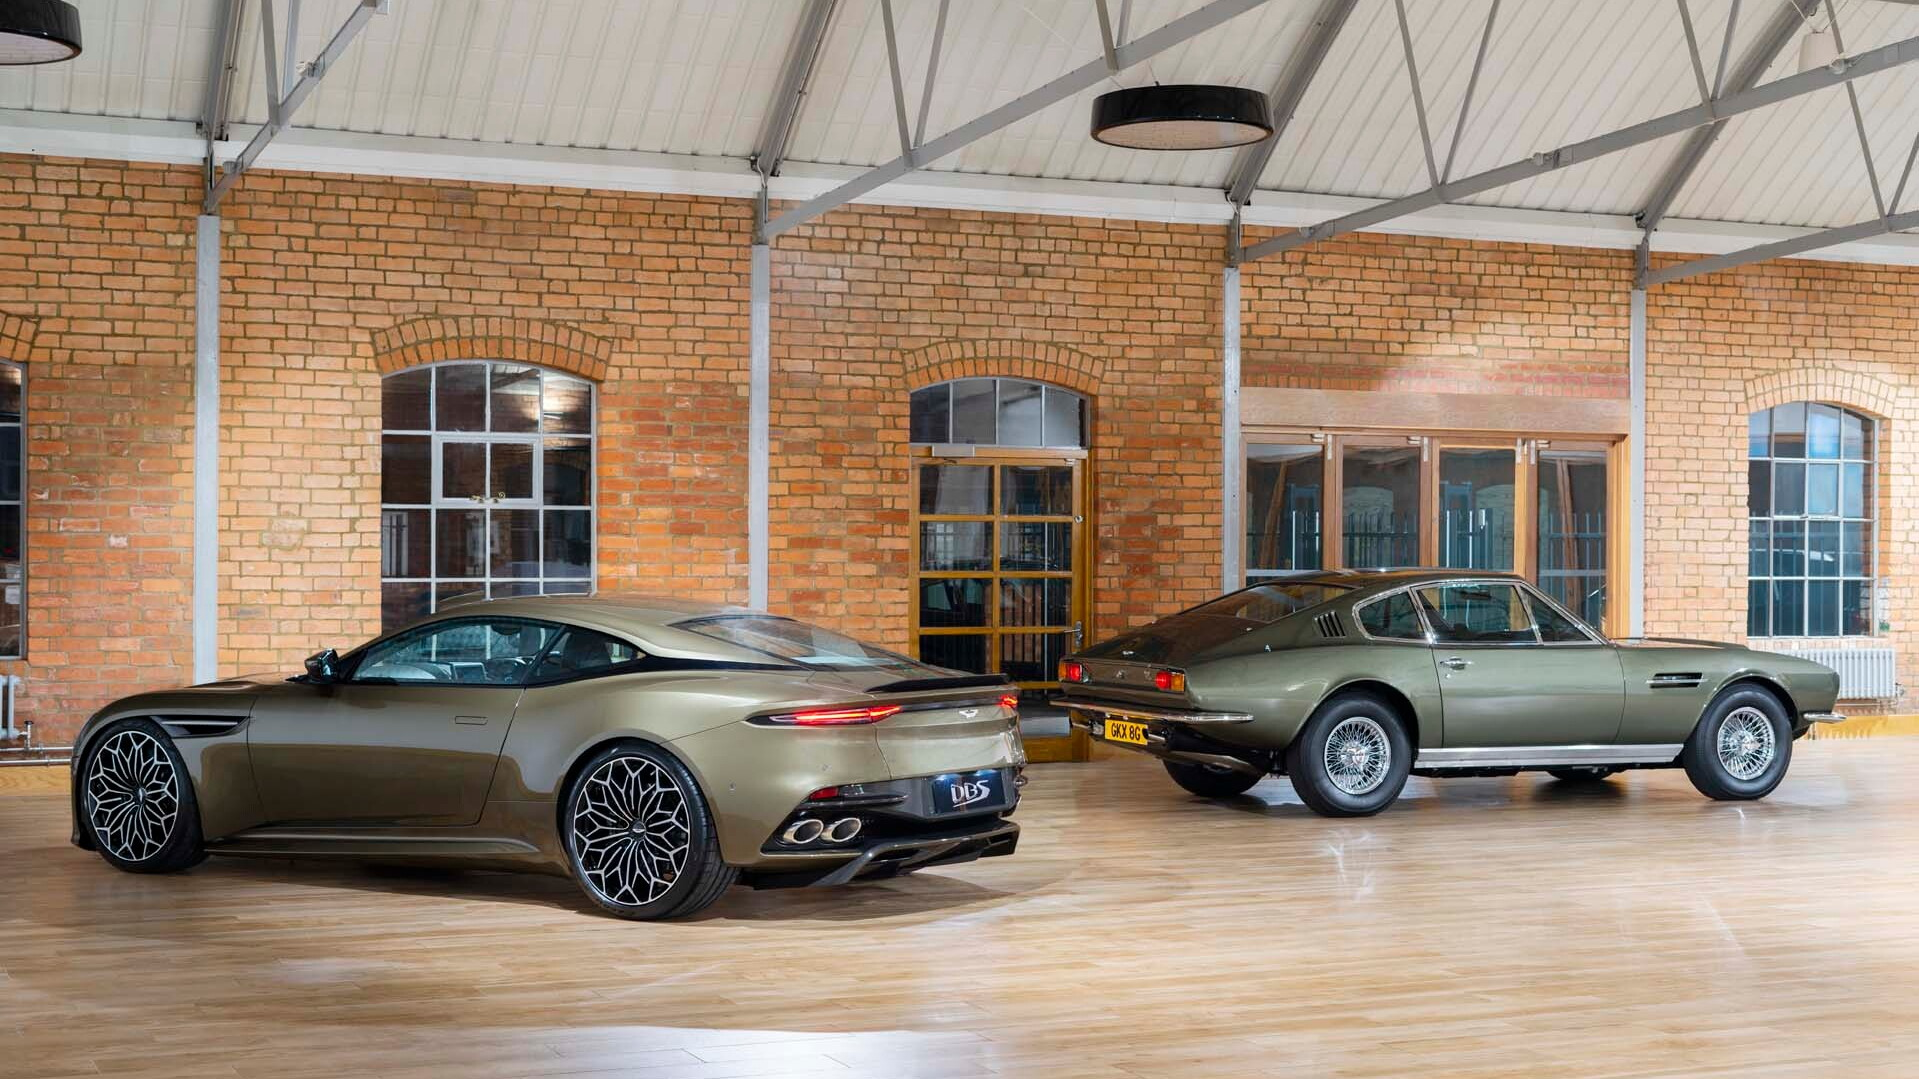 Aston Martin DBS Superleggera gets Bond-inspired special edition